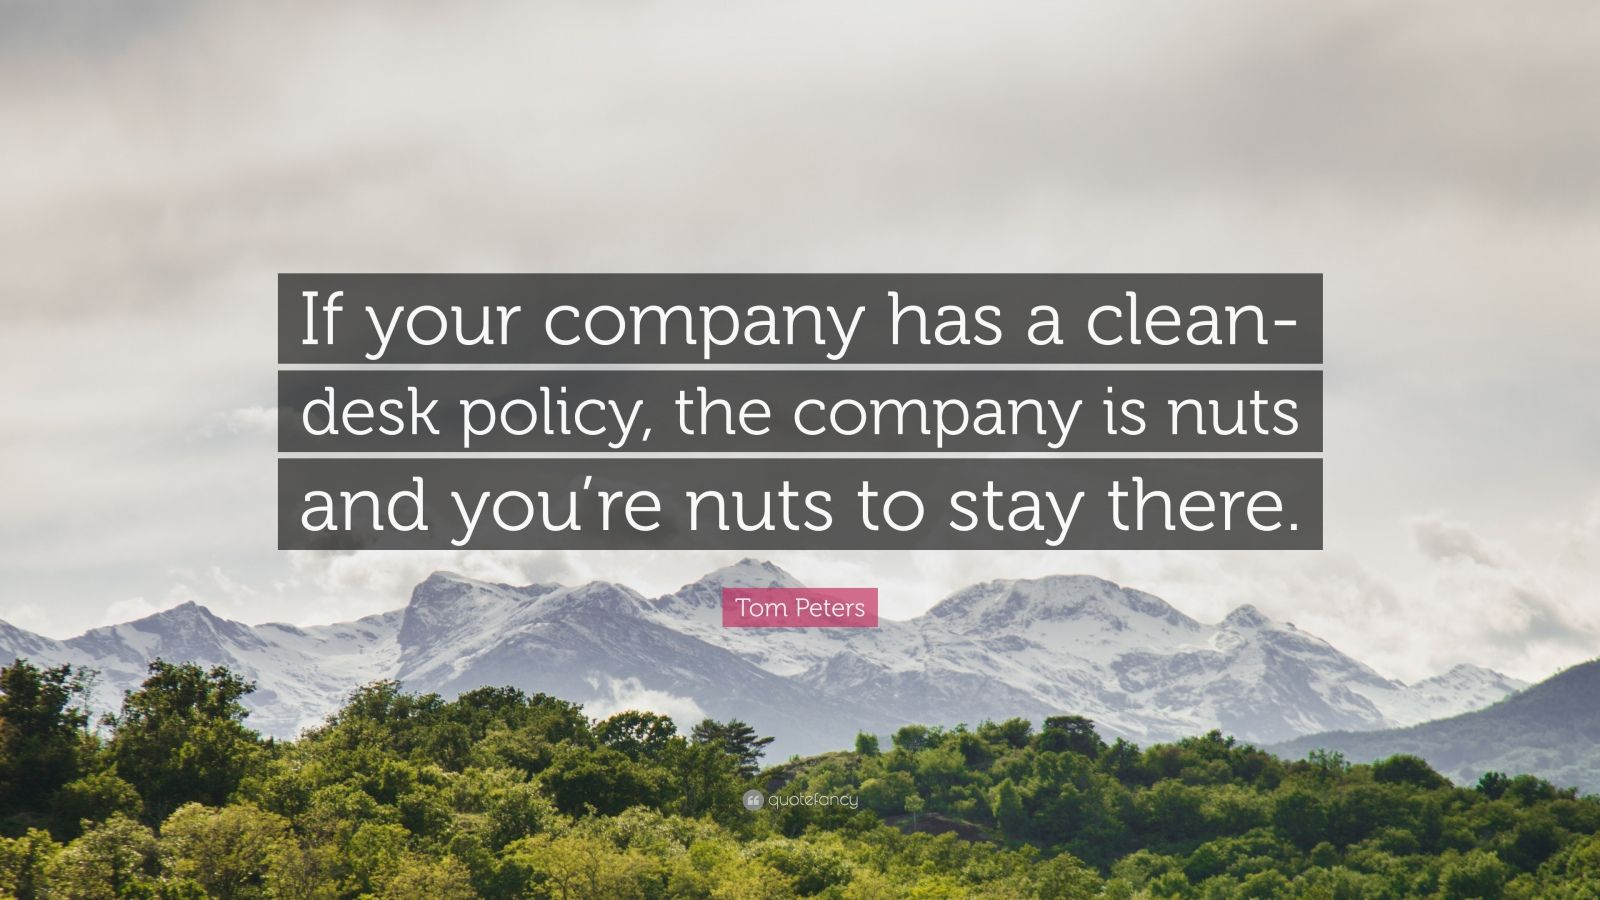 """Tom Peters Quote: """"If your company has a clean-desk policy, the company is nuts and you're nuts to stay there."""""""